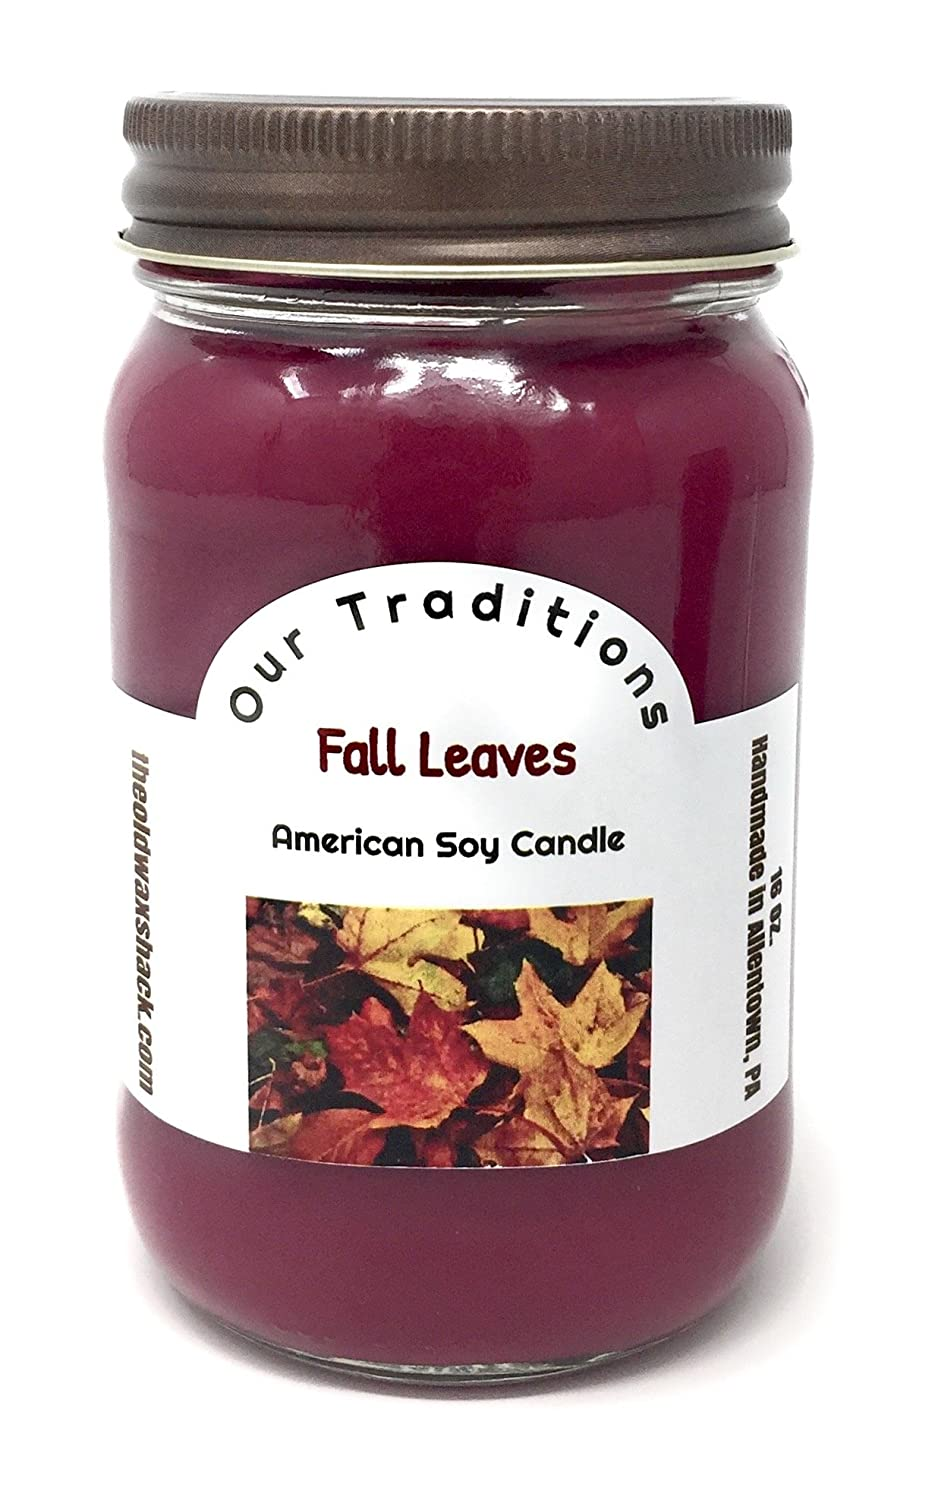 Autumn Scent Mason Jar The Old Wax Shack Fall Leaves Earthy 16 Oz Soy Candle